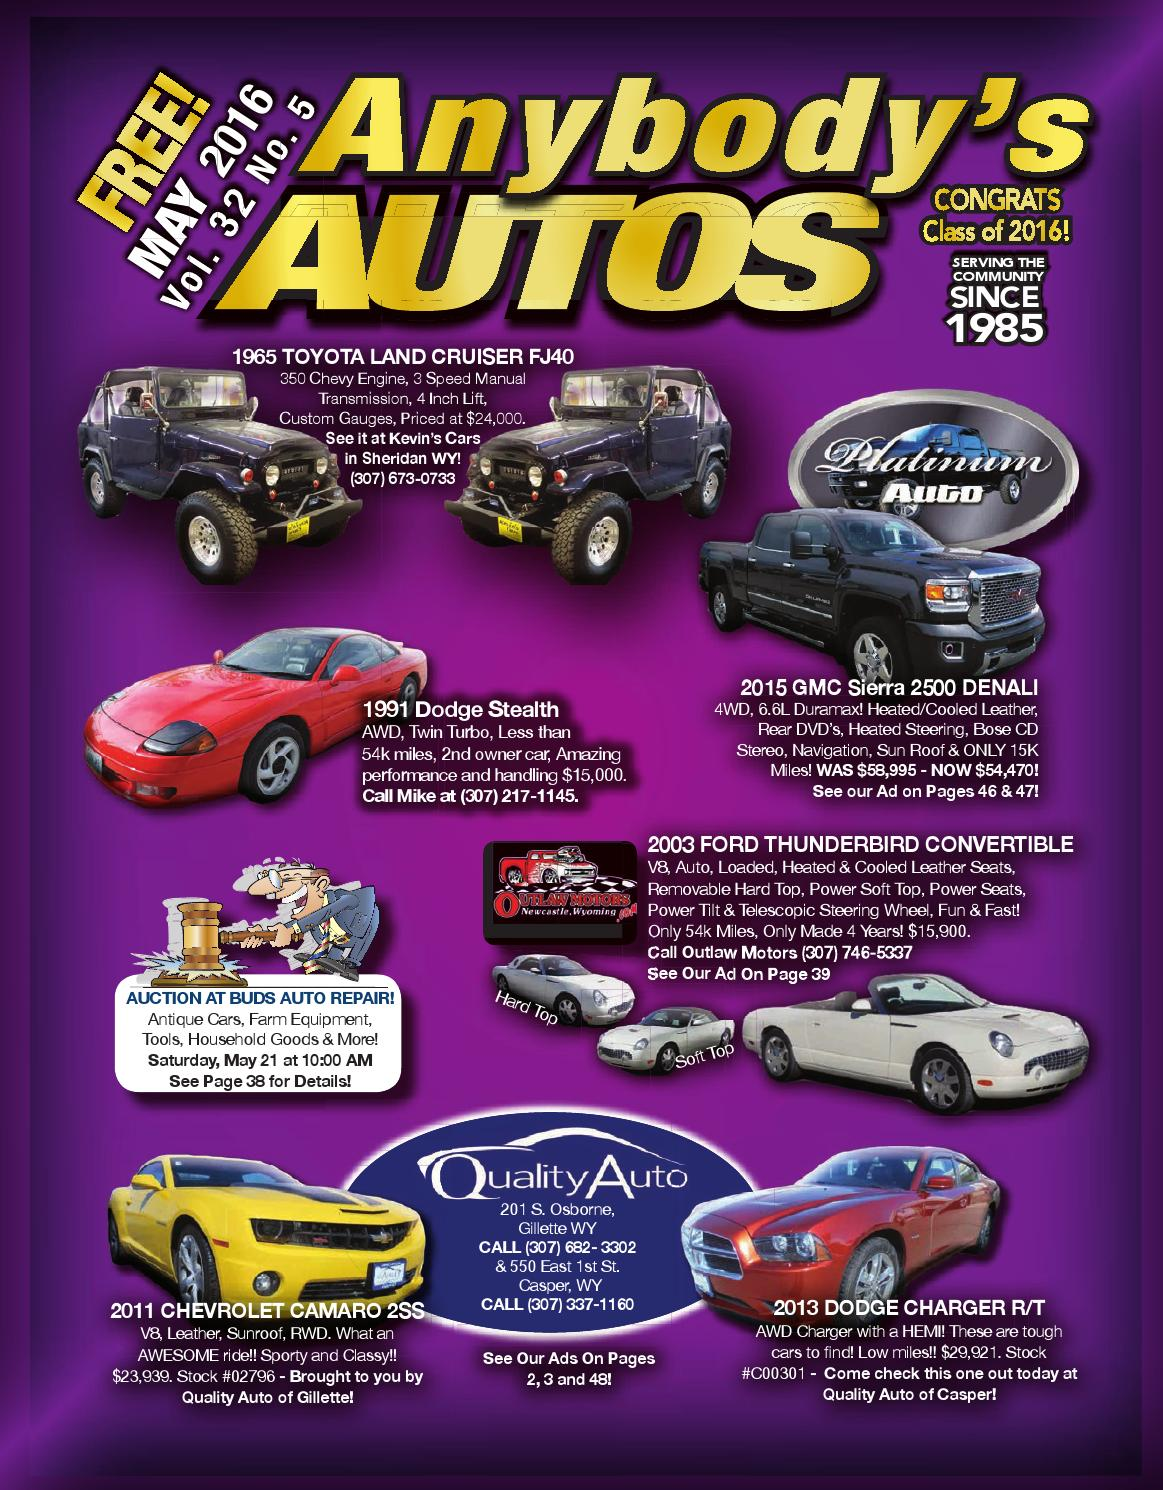 Anybodys Autos May 2016 by Anybodys Autos - issuu